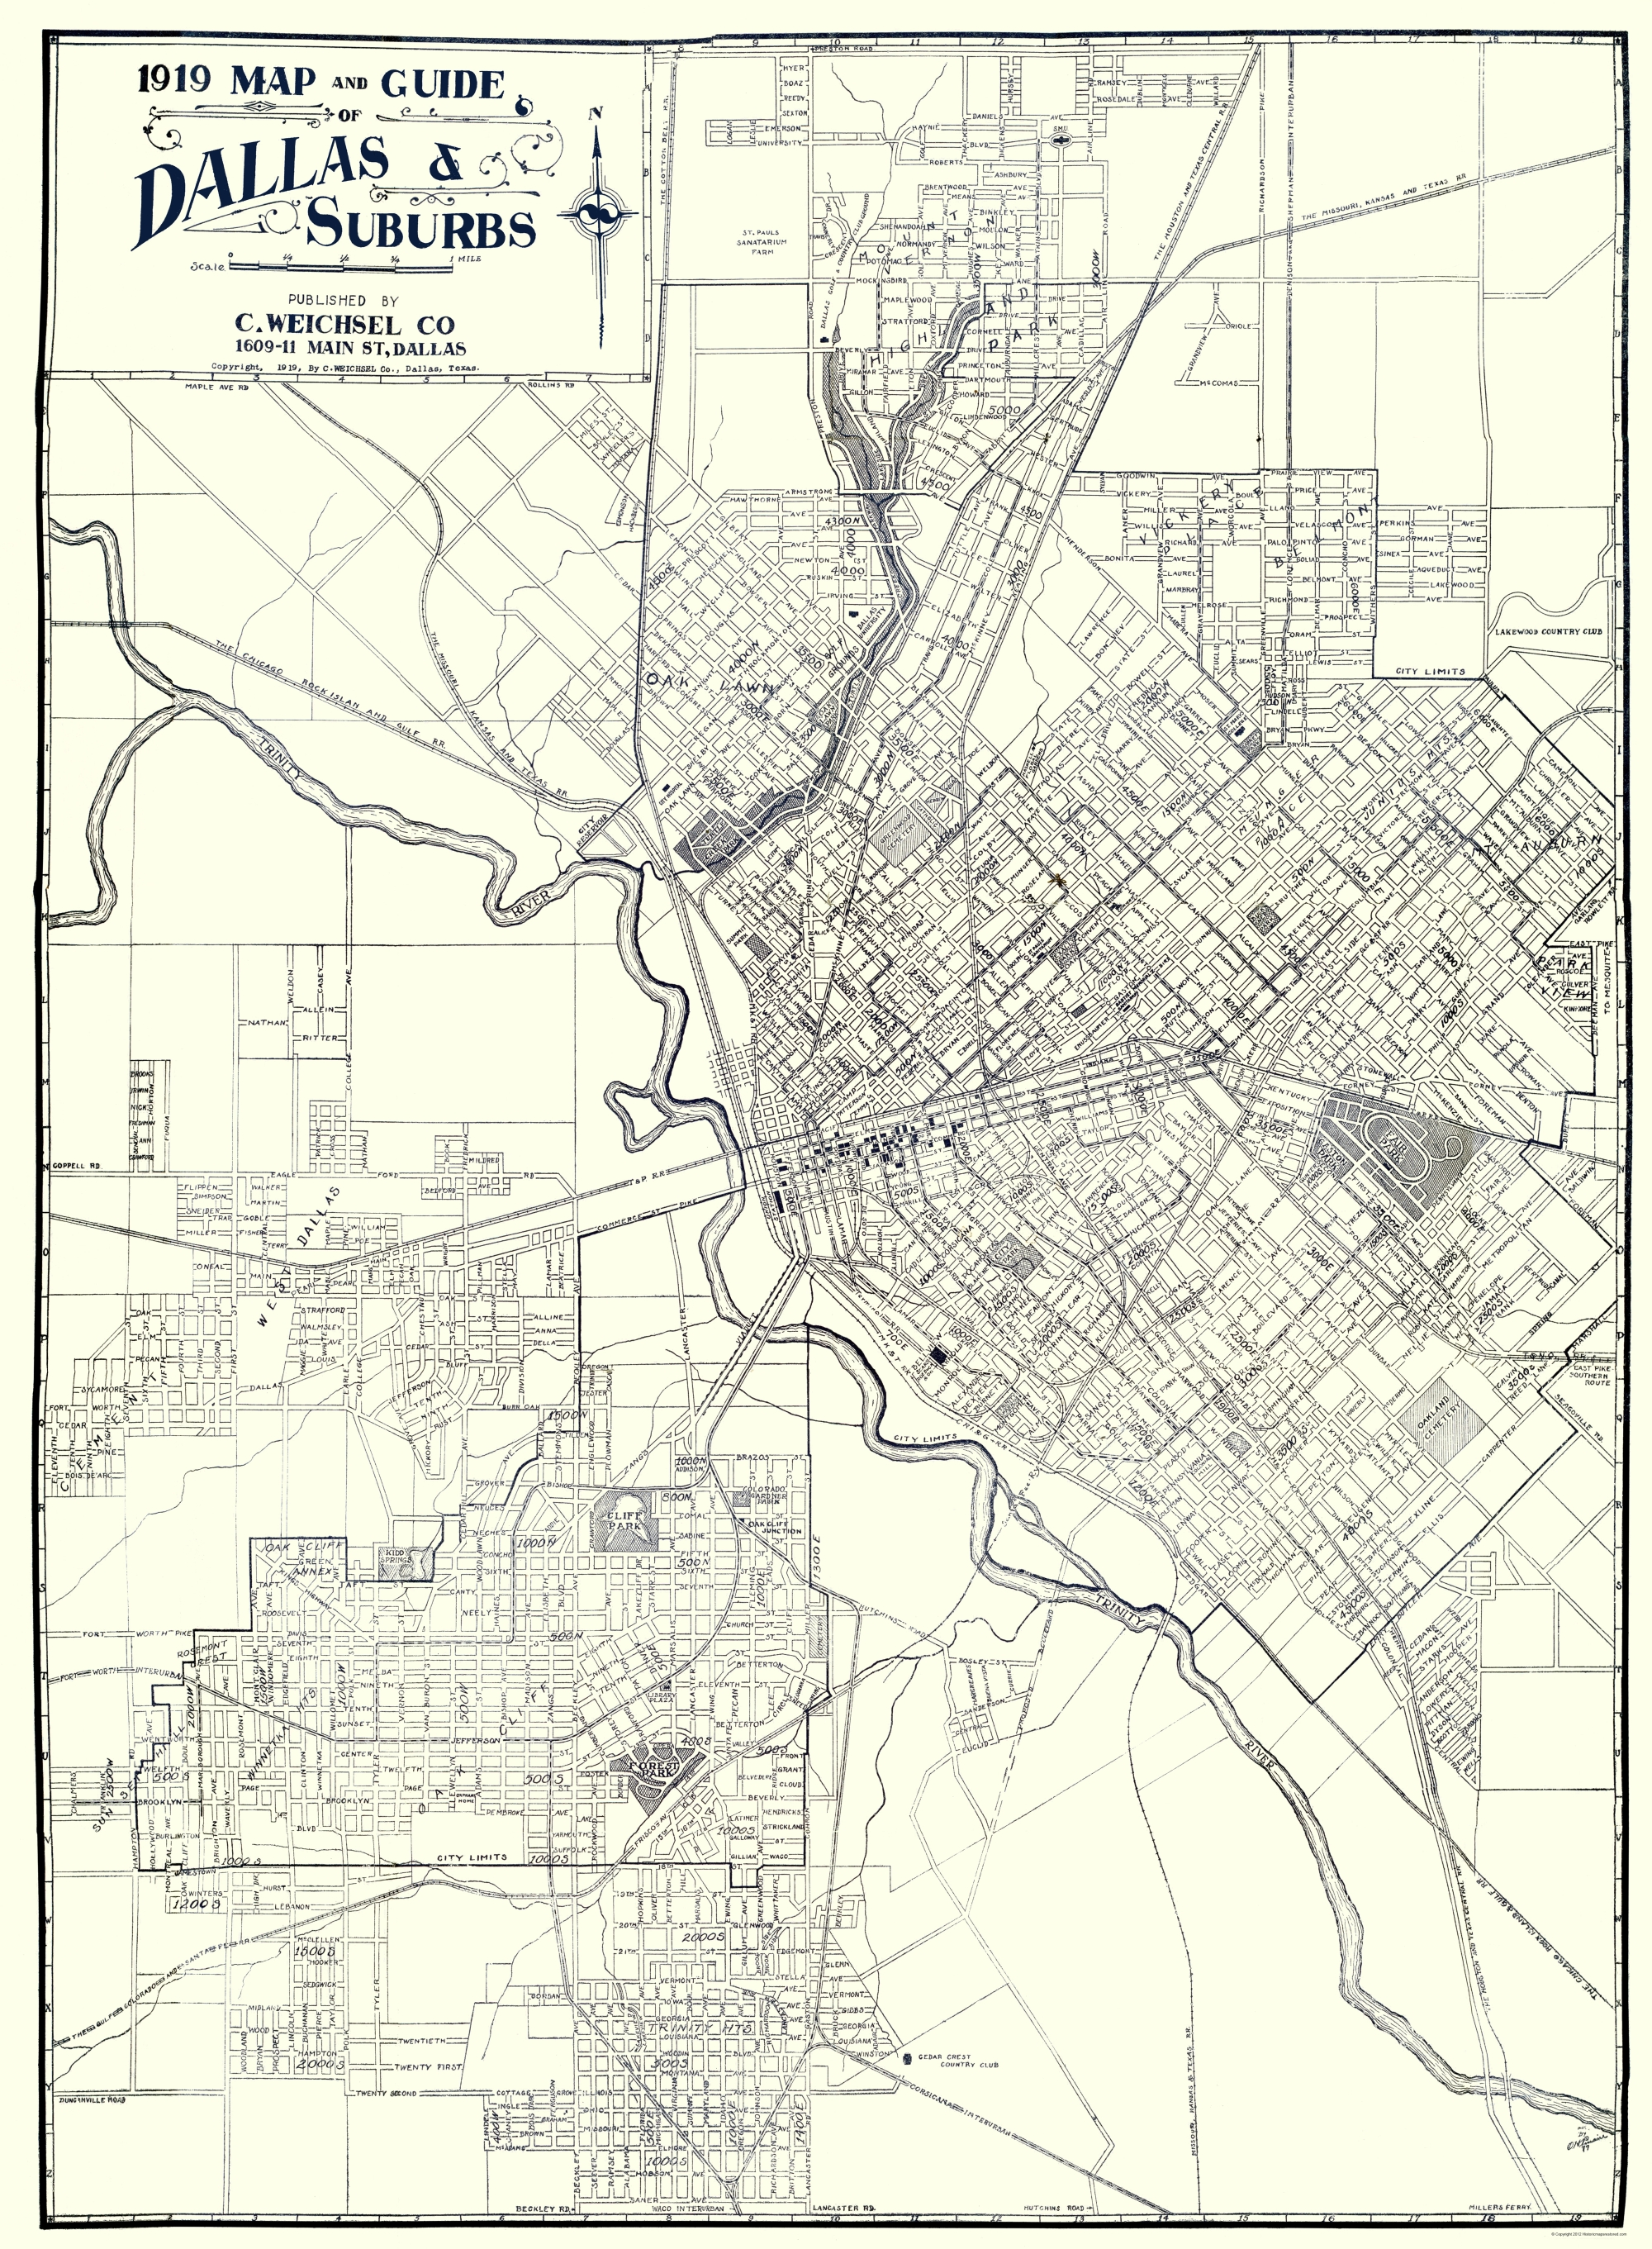 Old City Map - Dallas, Suburbs Texas - Weichsel 1919